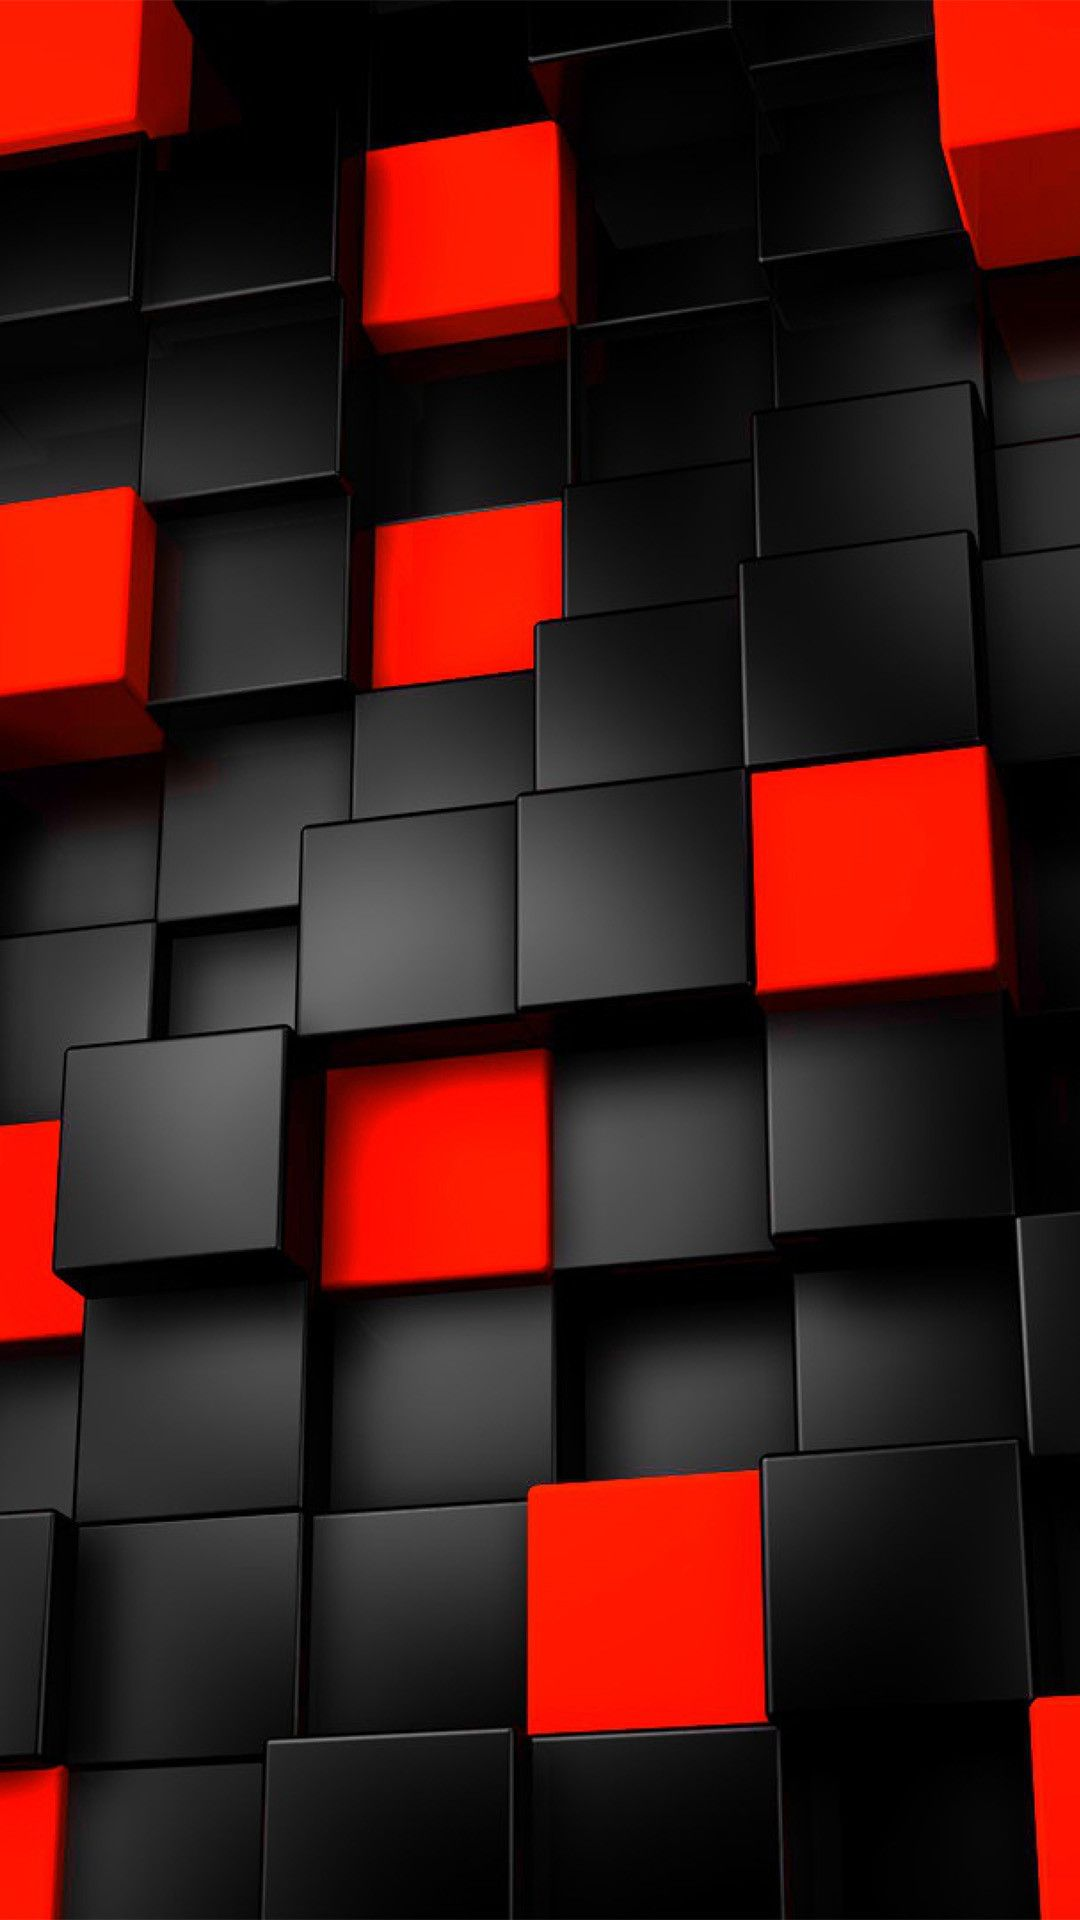 Red And Black Iphone Wallpapers Top Free Red And Black Iphone Backgrounds Wallpaperaccess